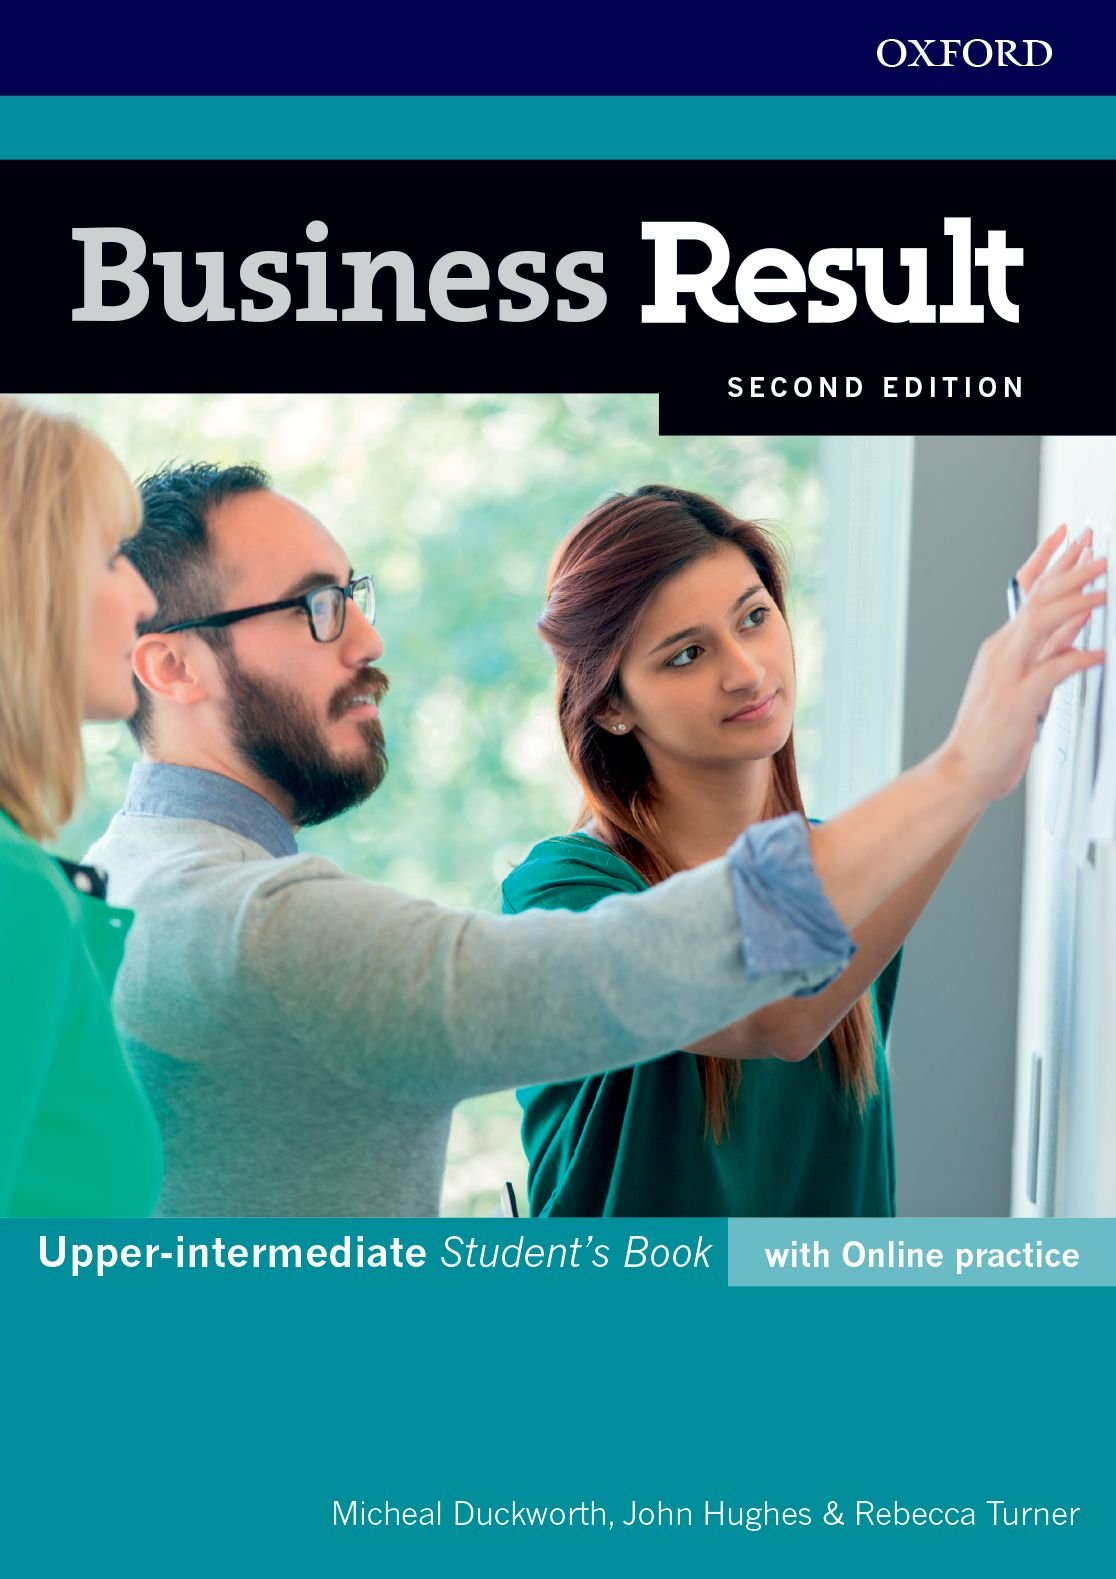 Business Result Upper-Intermediate. Student's Book with Online Practice 2nd Edition (Business Result Second Edition) (Inglés) Tapa blanda – 1 ene 2018 John Hughes Michael Duckworth Rebecca Turner S.A.